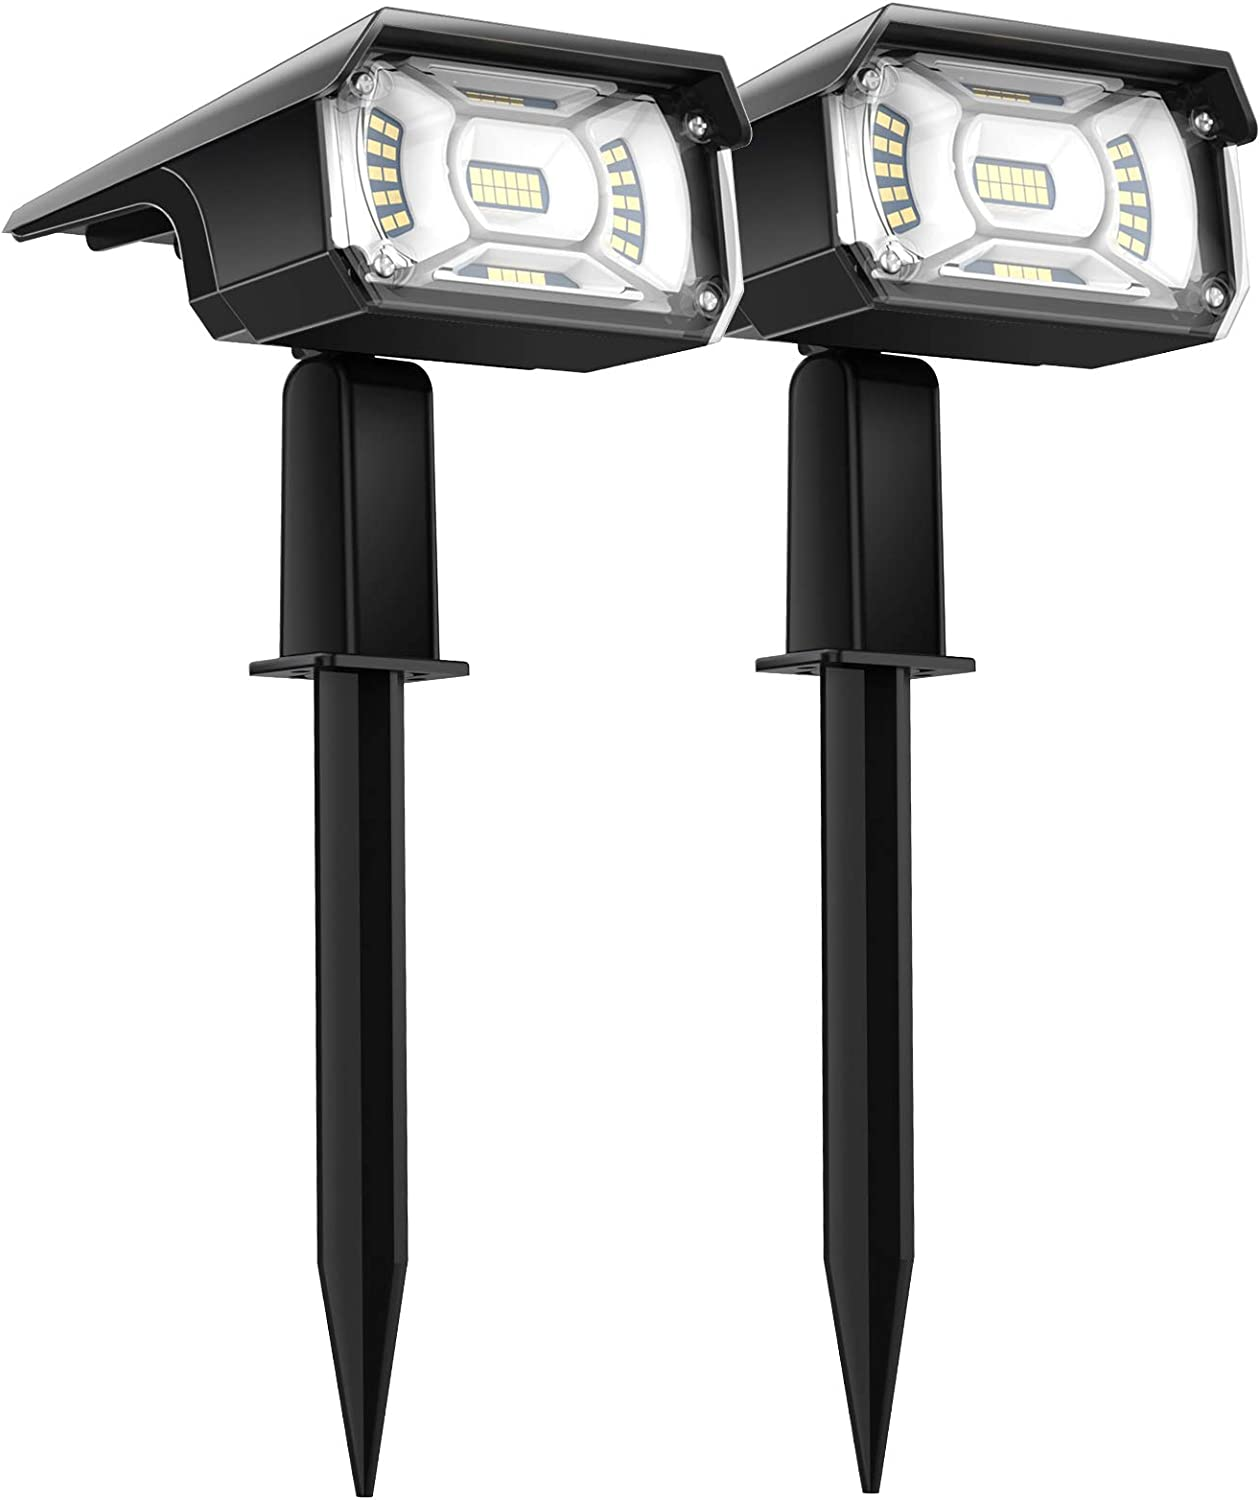 Solar Lights Outdoor, 40 LEDs Outdoor Solar Lights, IP67 Waterproof Solar Spot Lights Outdoor 2-in-1 Wall Light Decorative Lighting Auto On/Off for Patio Deck Yard Garden Driveway 2 Pack (Cold)